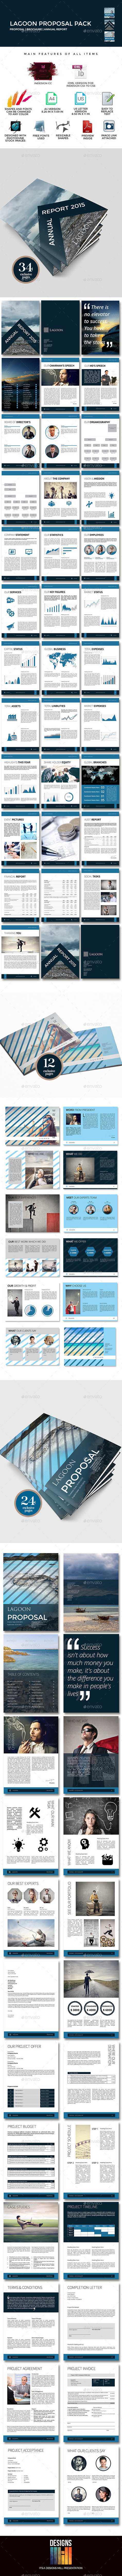 GraphicRiver Lagoon Business Proposals Bundle 9603965